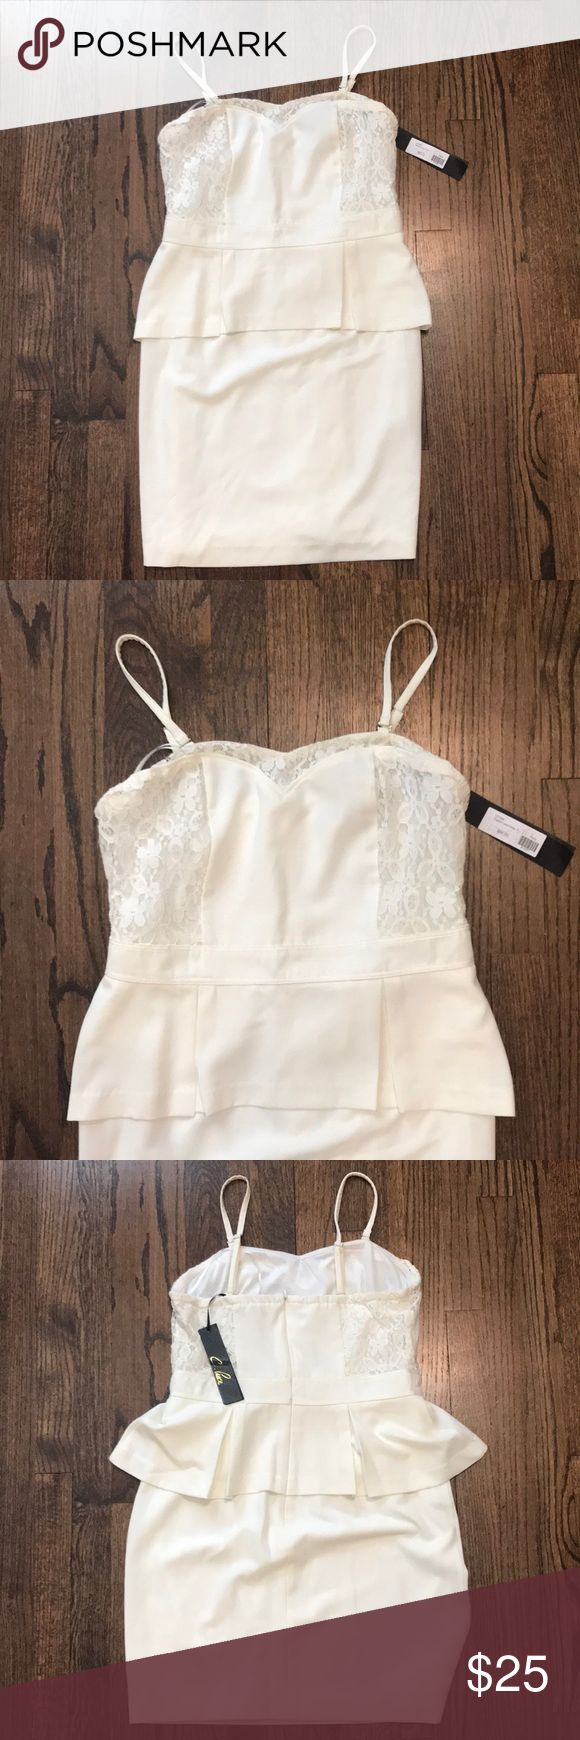 White peplum dress Never worn with tags! White peplum dress with extremely tiny red mark near the mid section, as seen in picture, price reflects! Dresses